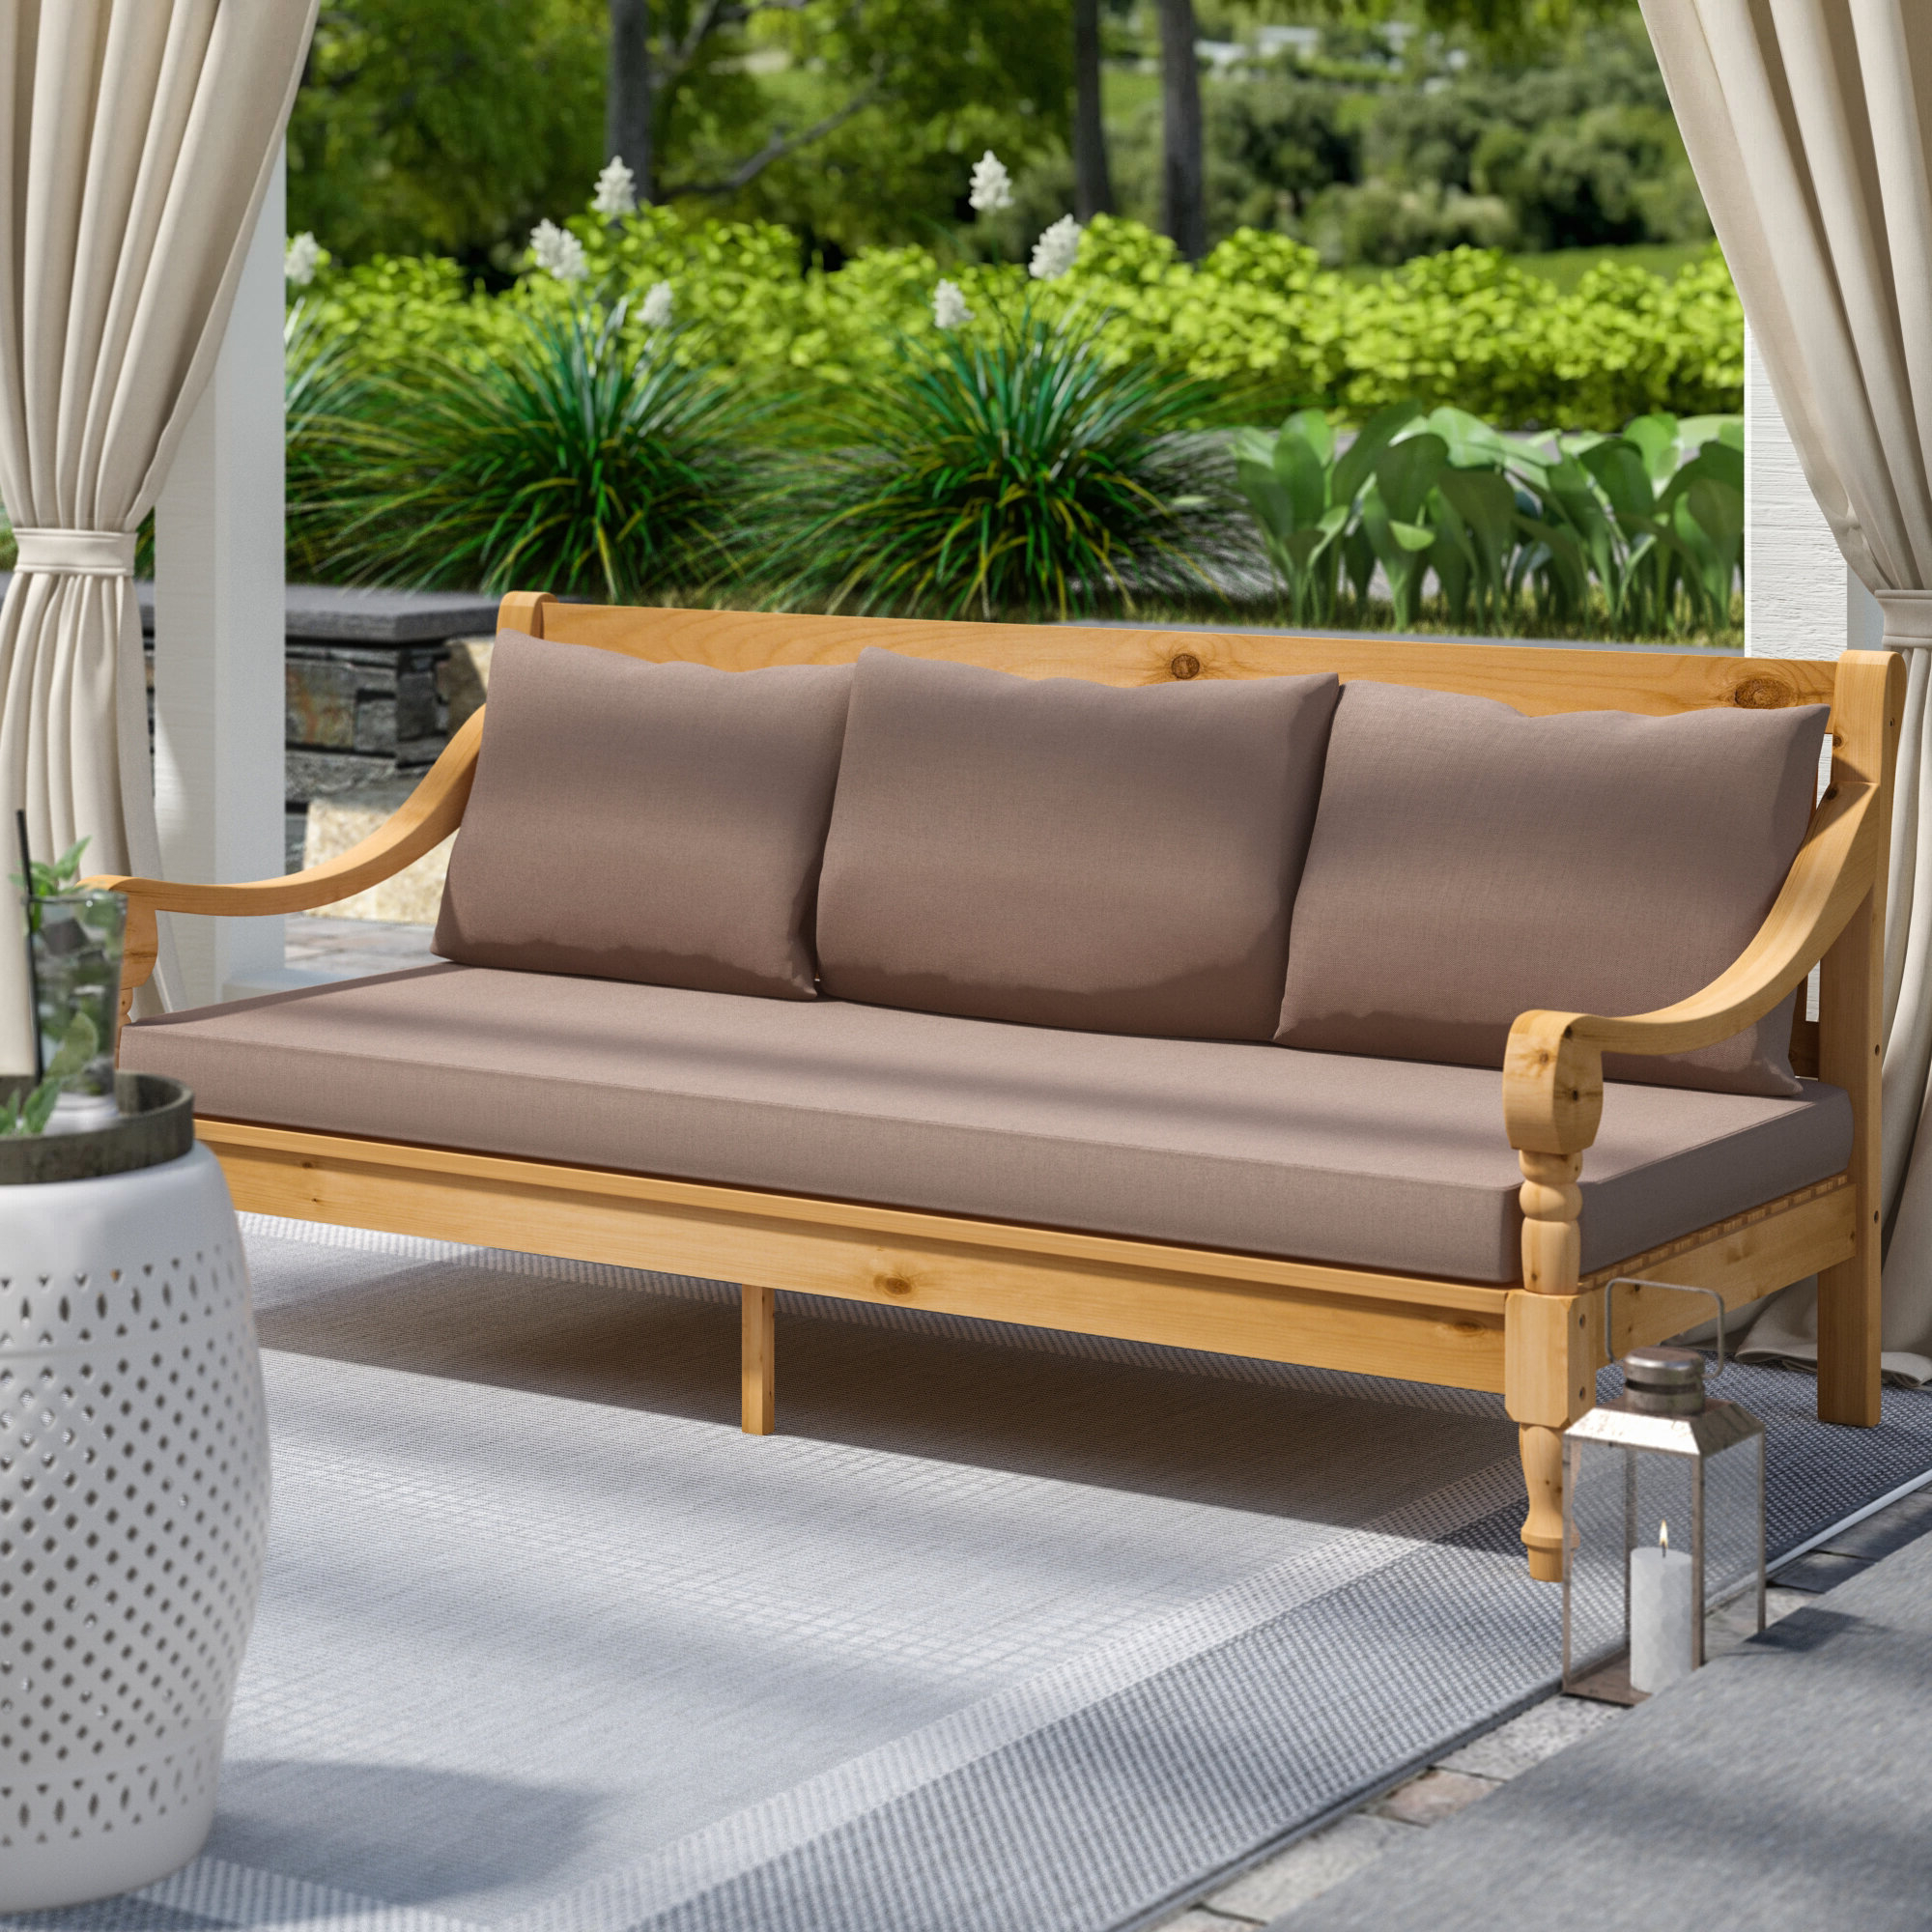 Ellanti Teak Patio Daybeds With Cushions With Preferred Roush Teak Patio Daybed With Cushions (View 8 of 20)